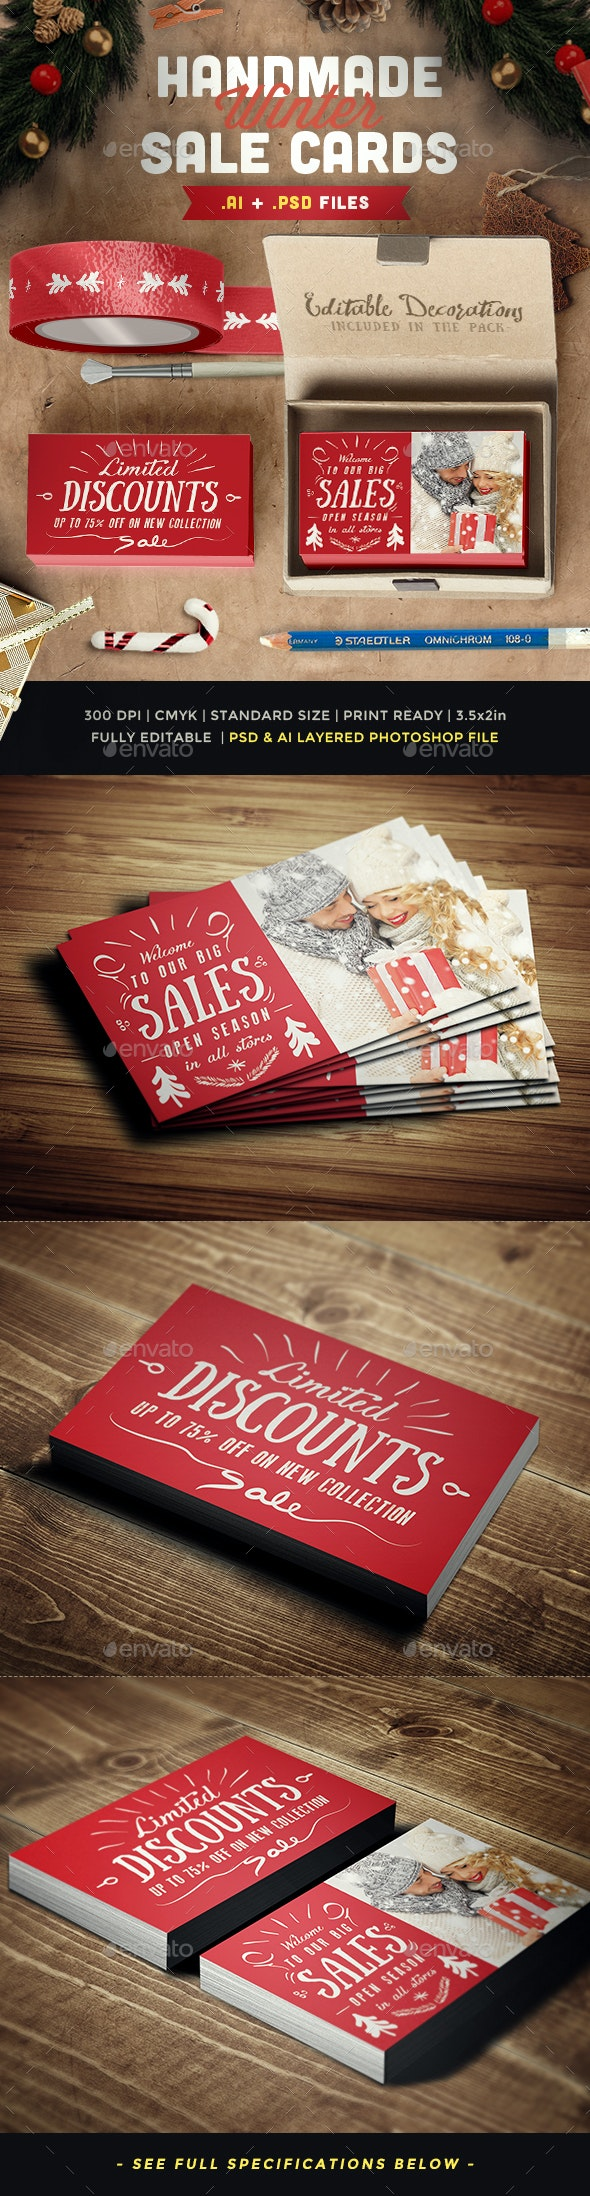 Winter Sales Card IV - Loyalty Cards Cards & Invites